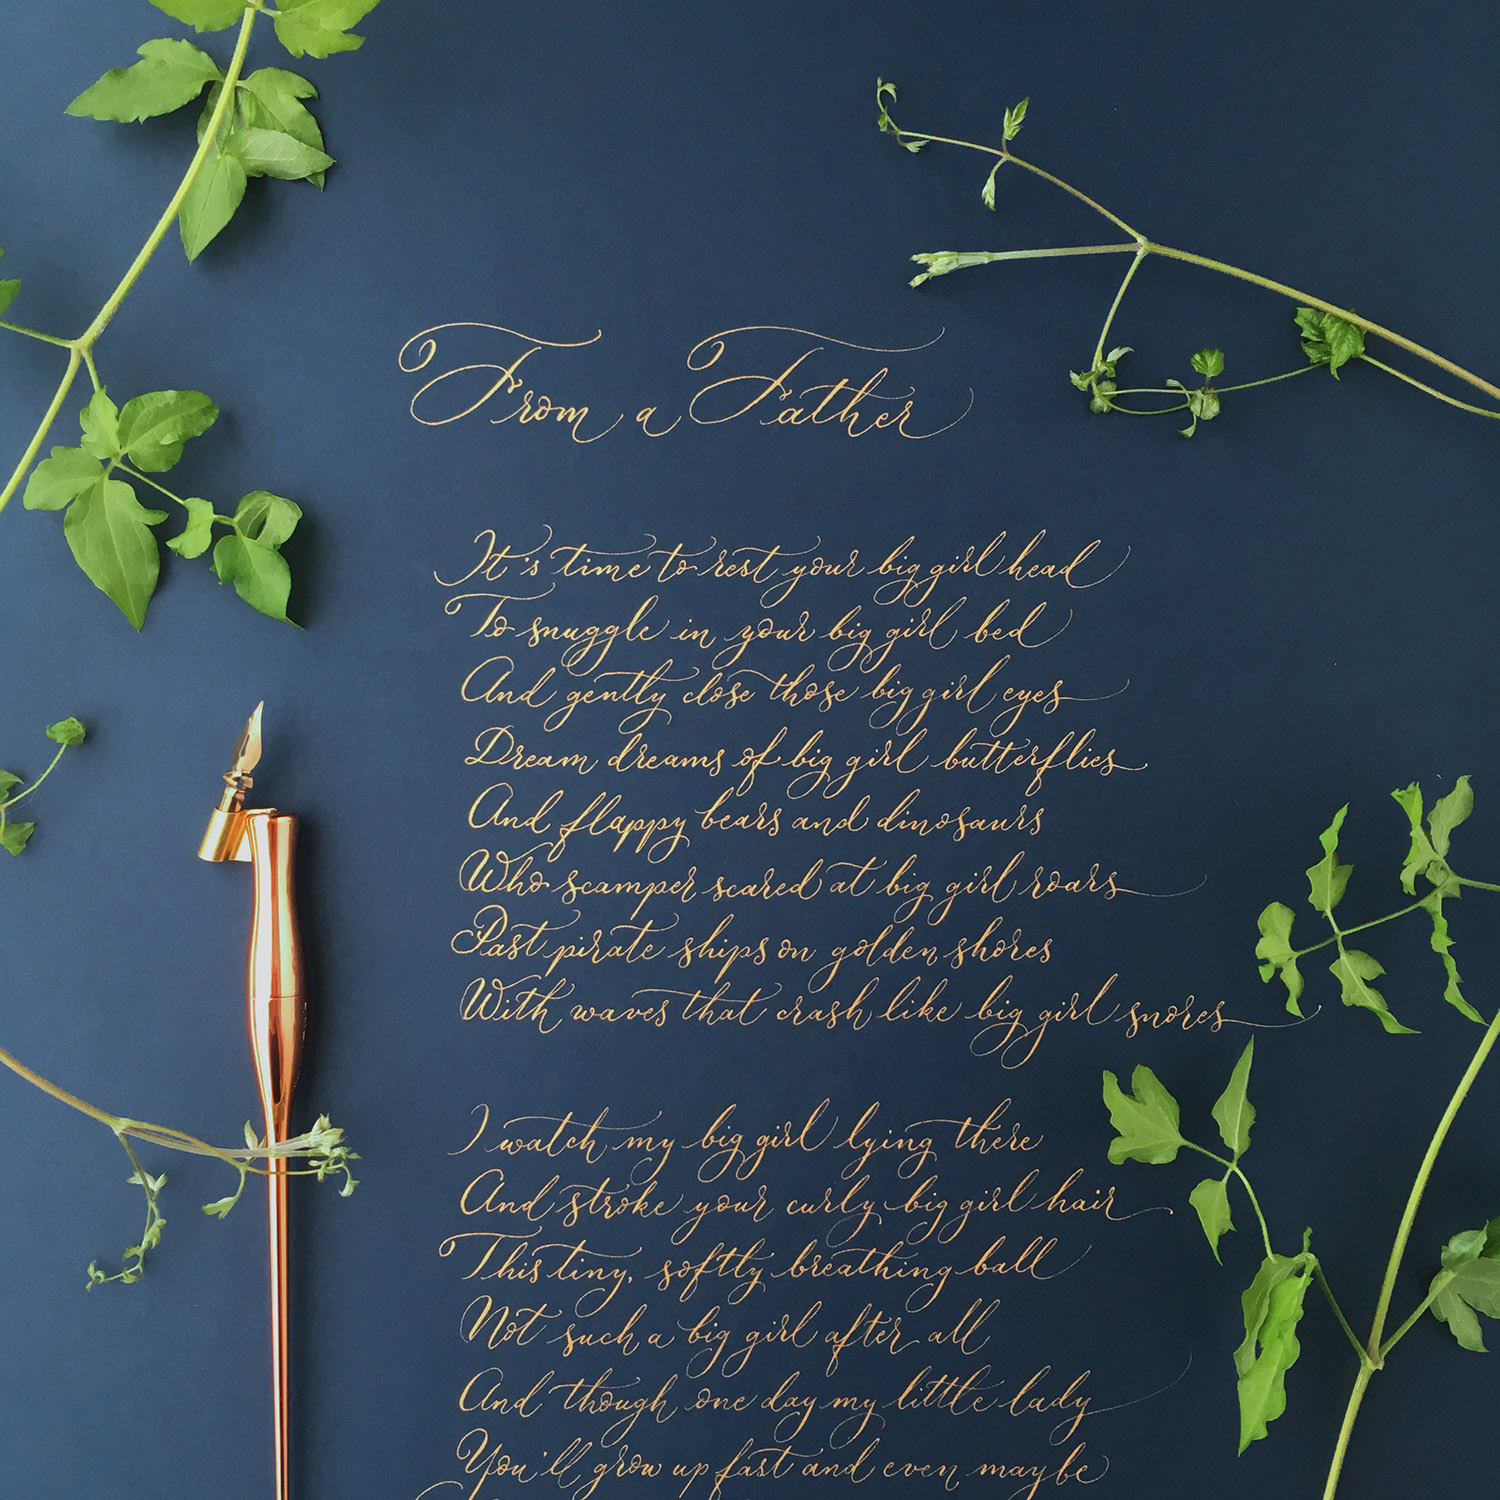 From a Father – calligraphy poem commission for Fathers Day